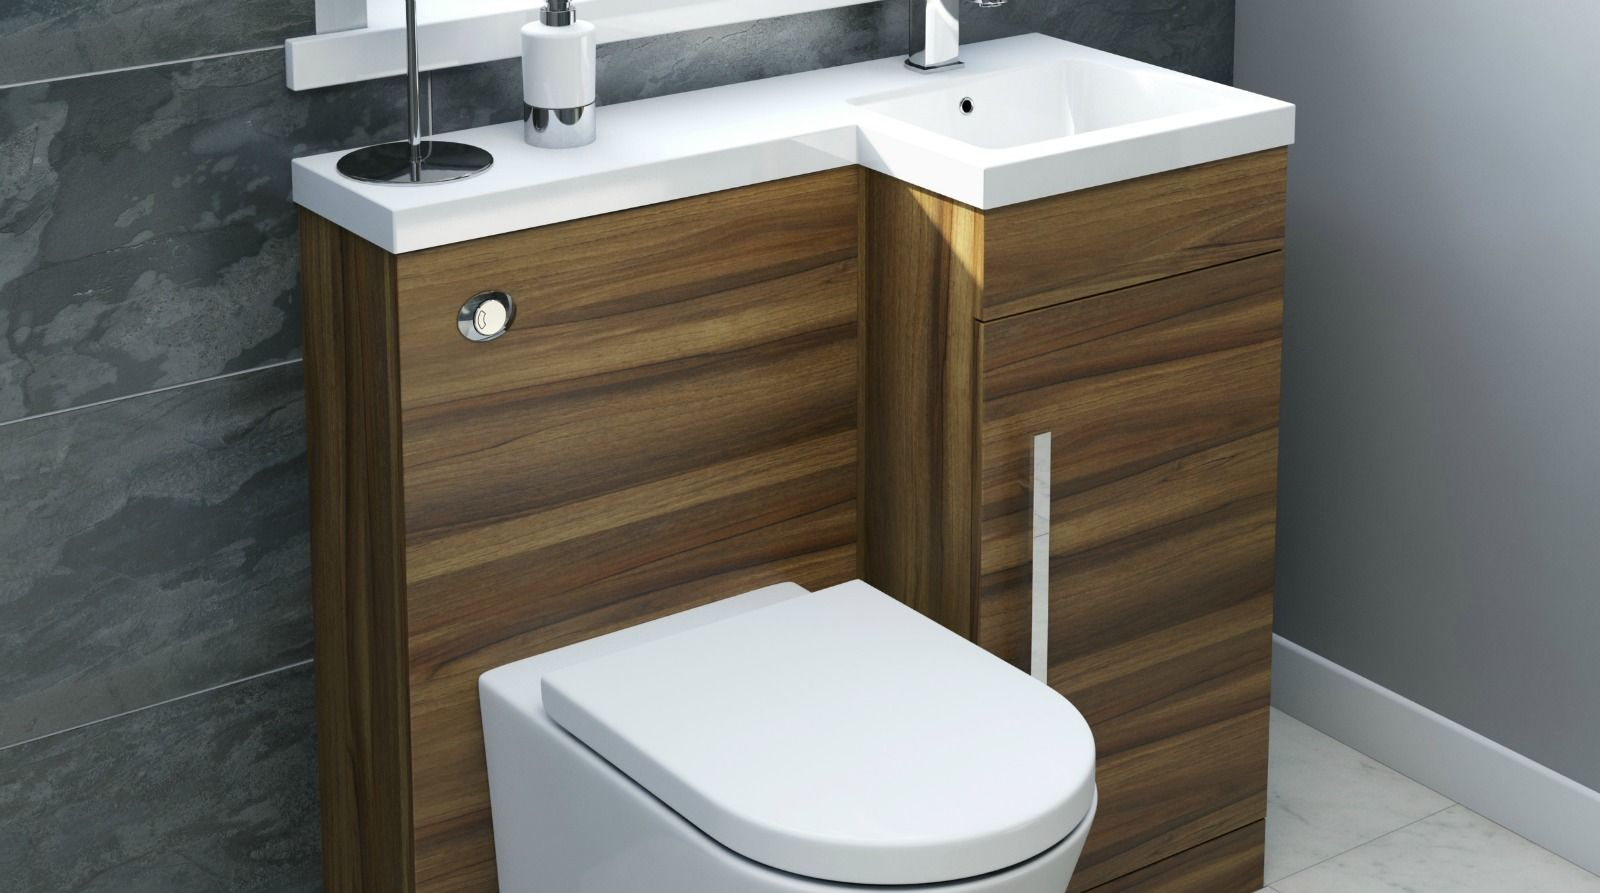 Ordinaire Toilet And Basin Unit Buying Guide